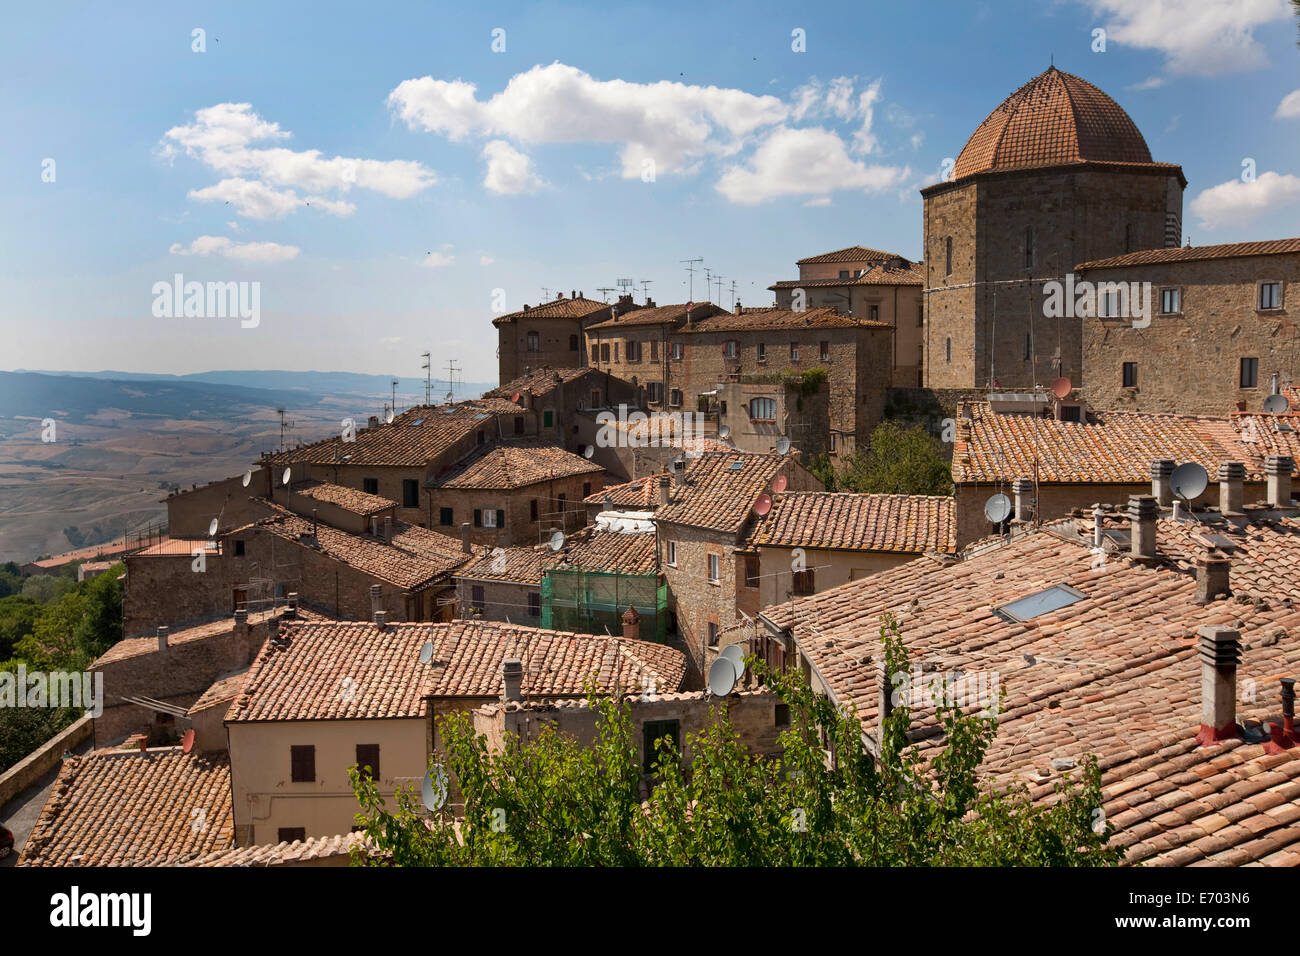 View of Volterra, Tuscany, Italy - Stock Image